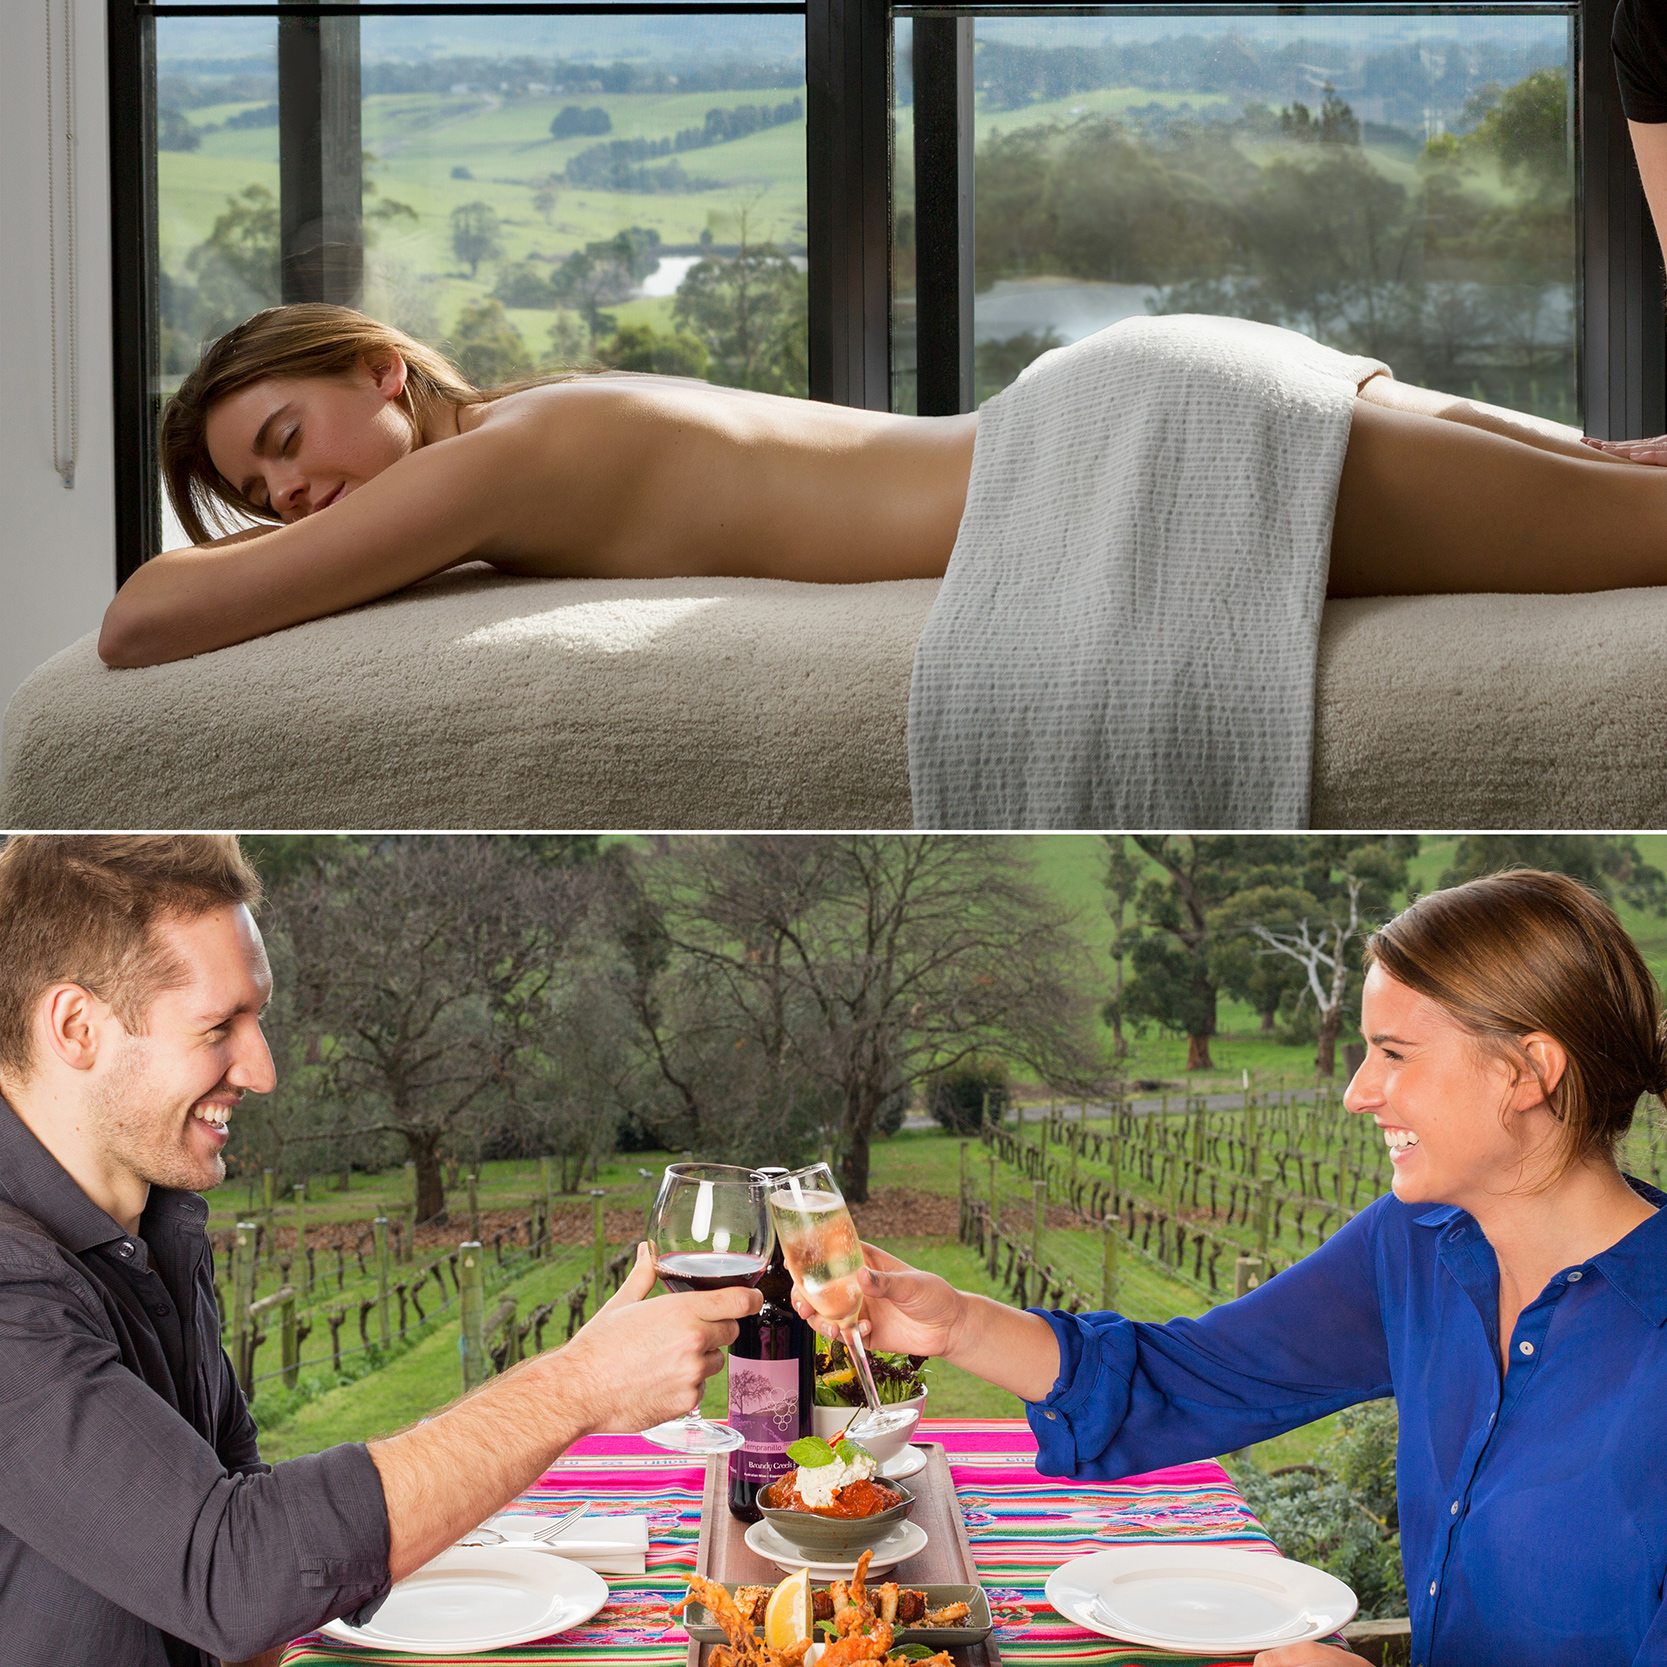 Ultimate Escape Package - $185 per person or $350 per couple | Hammam | choice of 1 hour facial or massage |tapas 3 course lunchEscape to the country with Brandy Creek Estate's Ultimate Escape Package. Begin in our Spa Hammam steam room and then indulge in a 1 hour facial or massage. Once you're relaxed, head to the restaurant to enjoy a delicious tapas 3 course meal to complete your day!Bookings are available Thursday to Sunday.